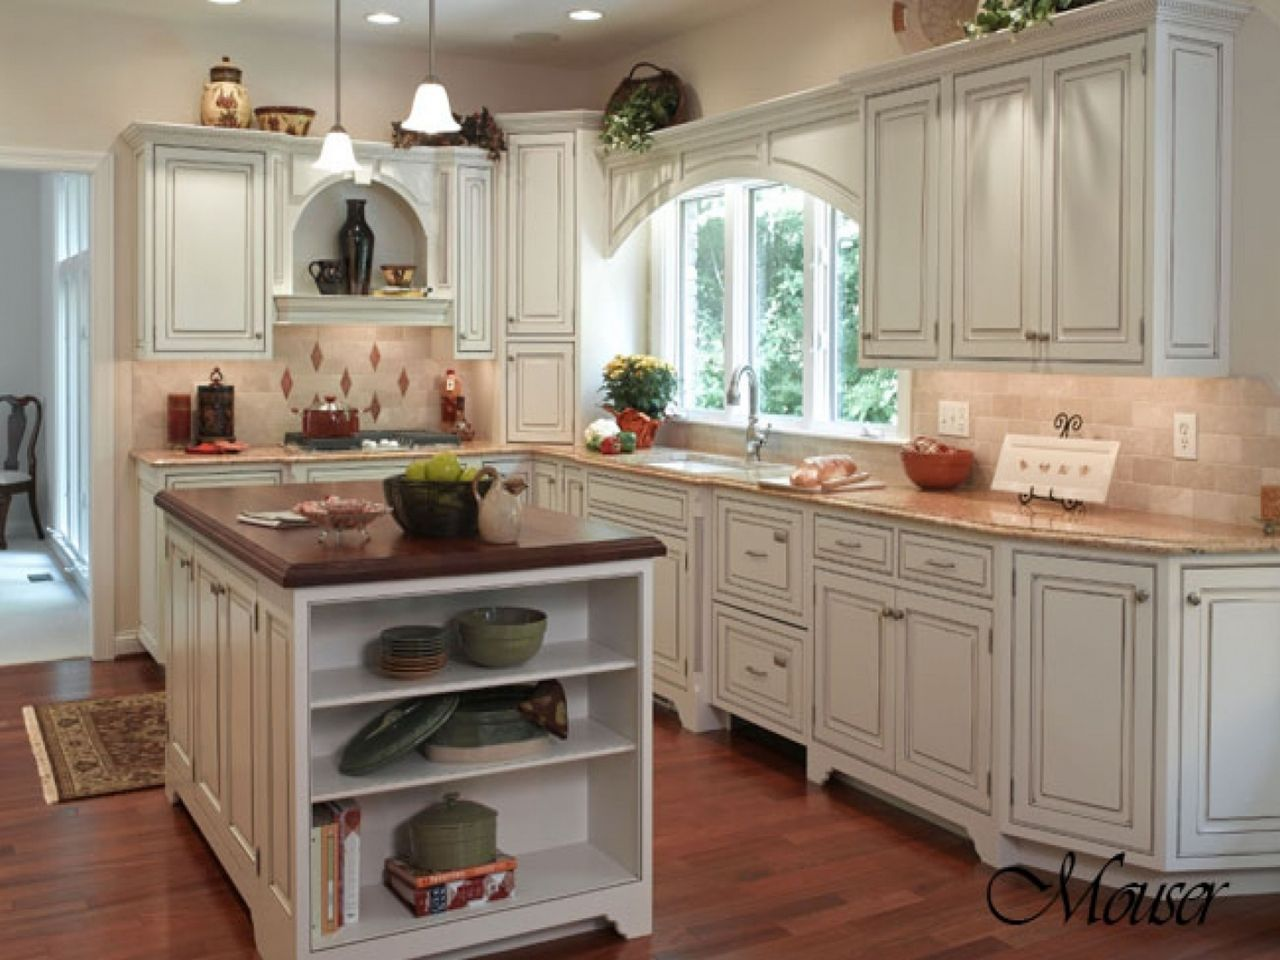 Modern Country Kitchen With Oak Cabinets Country Kitchen Design With White Oak Cabinets In L Shaped Layout